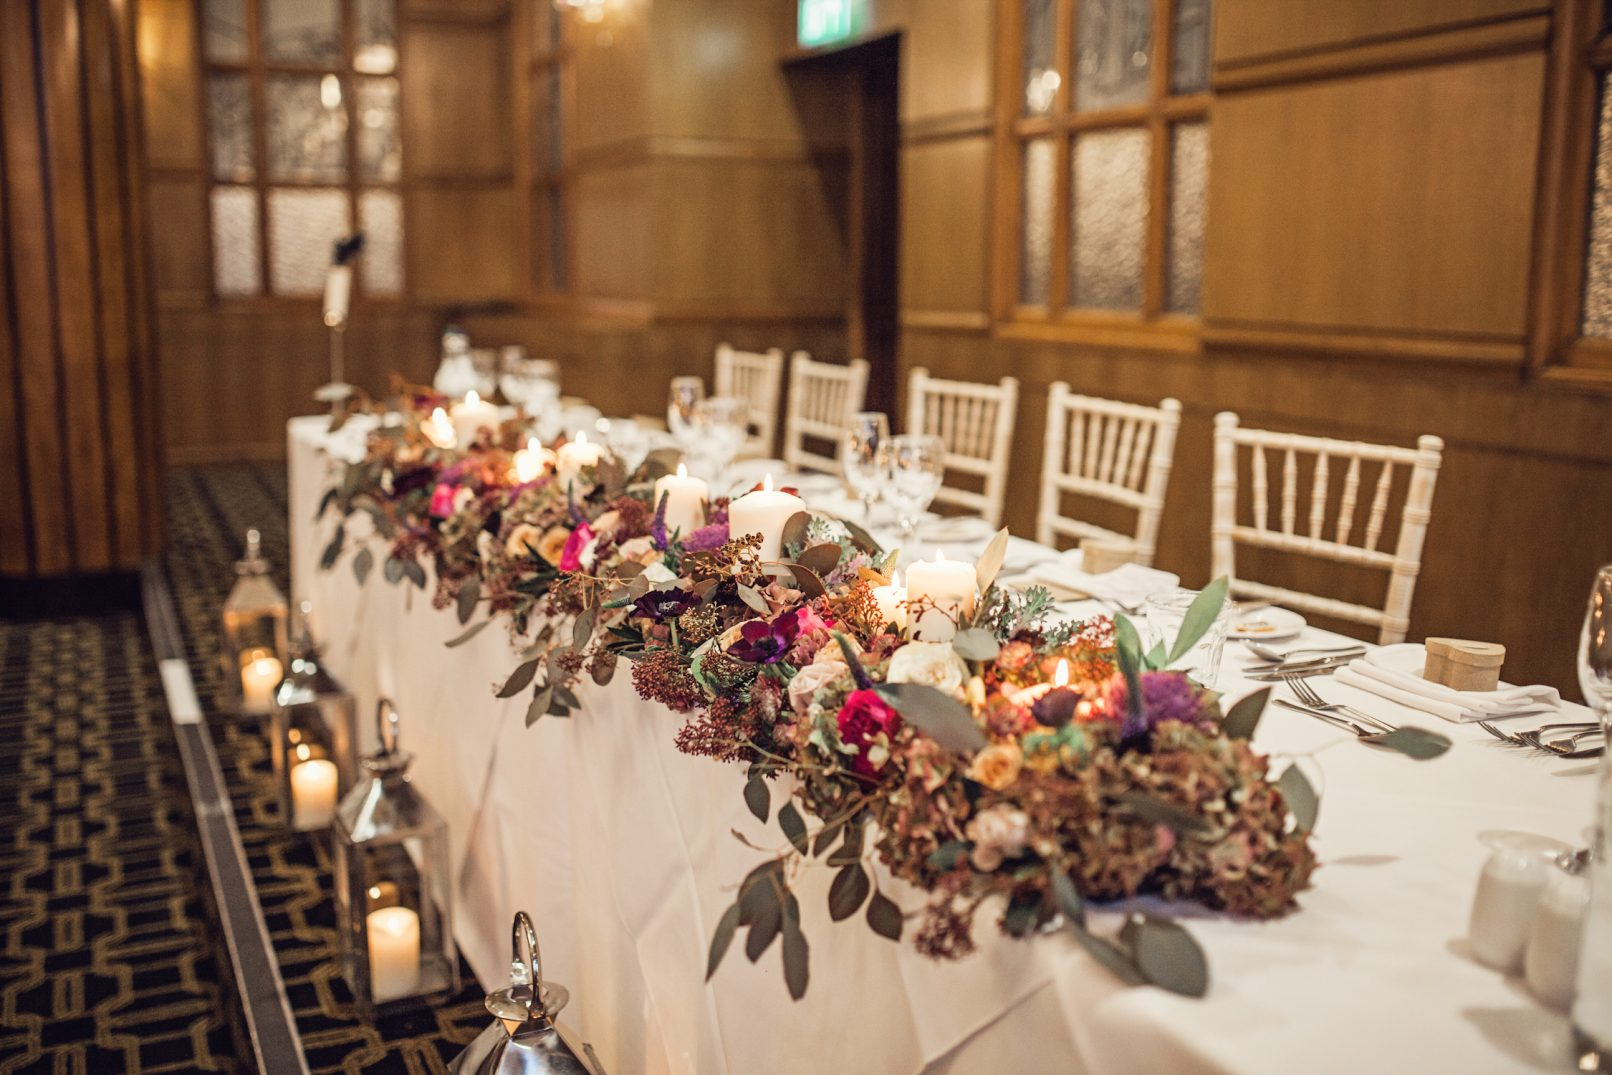 wedding table flowers wedding flowers tablescape top table flowers 13 belsflowers 1191